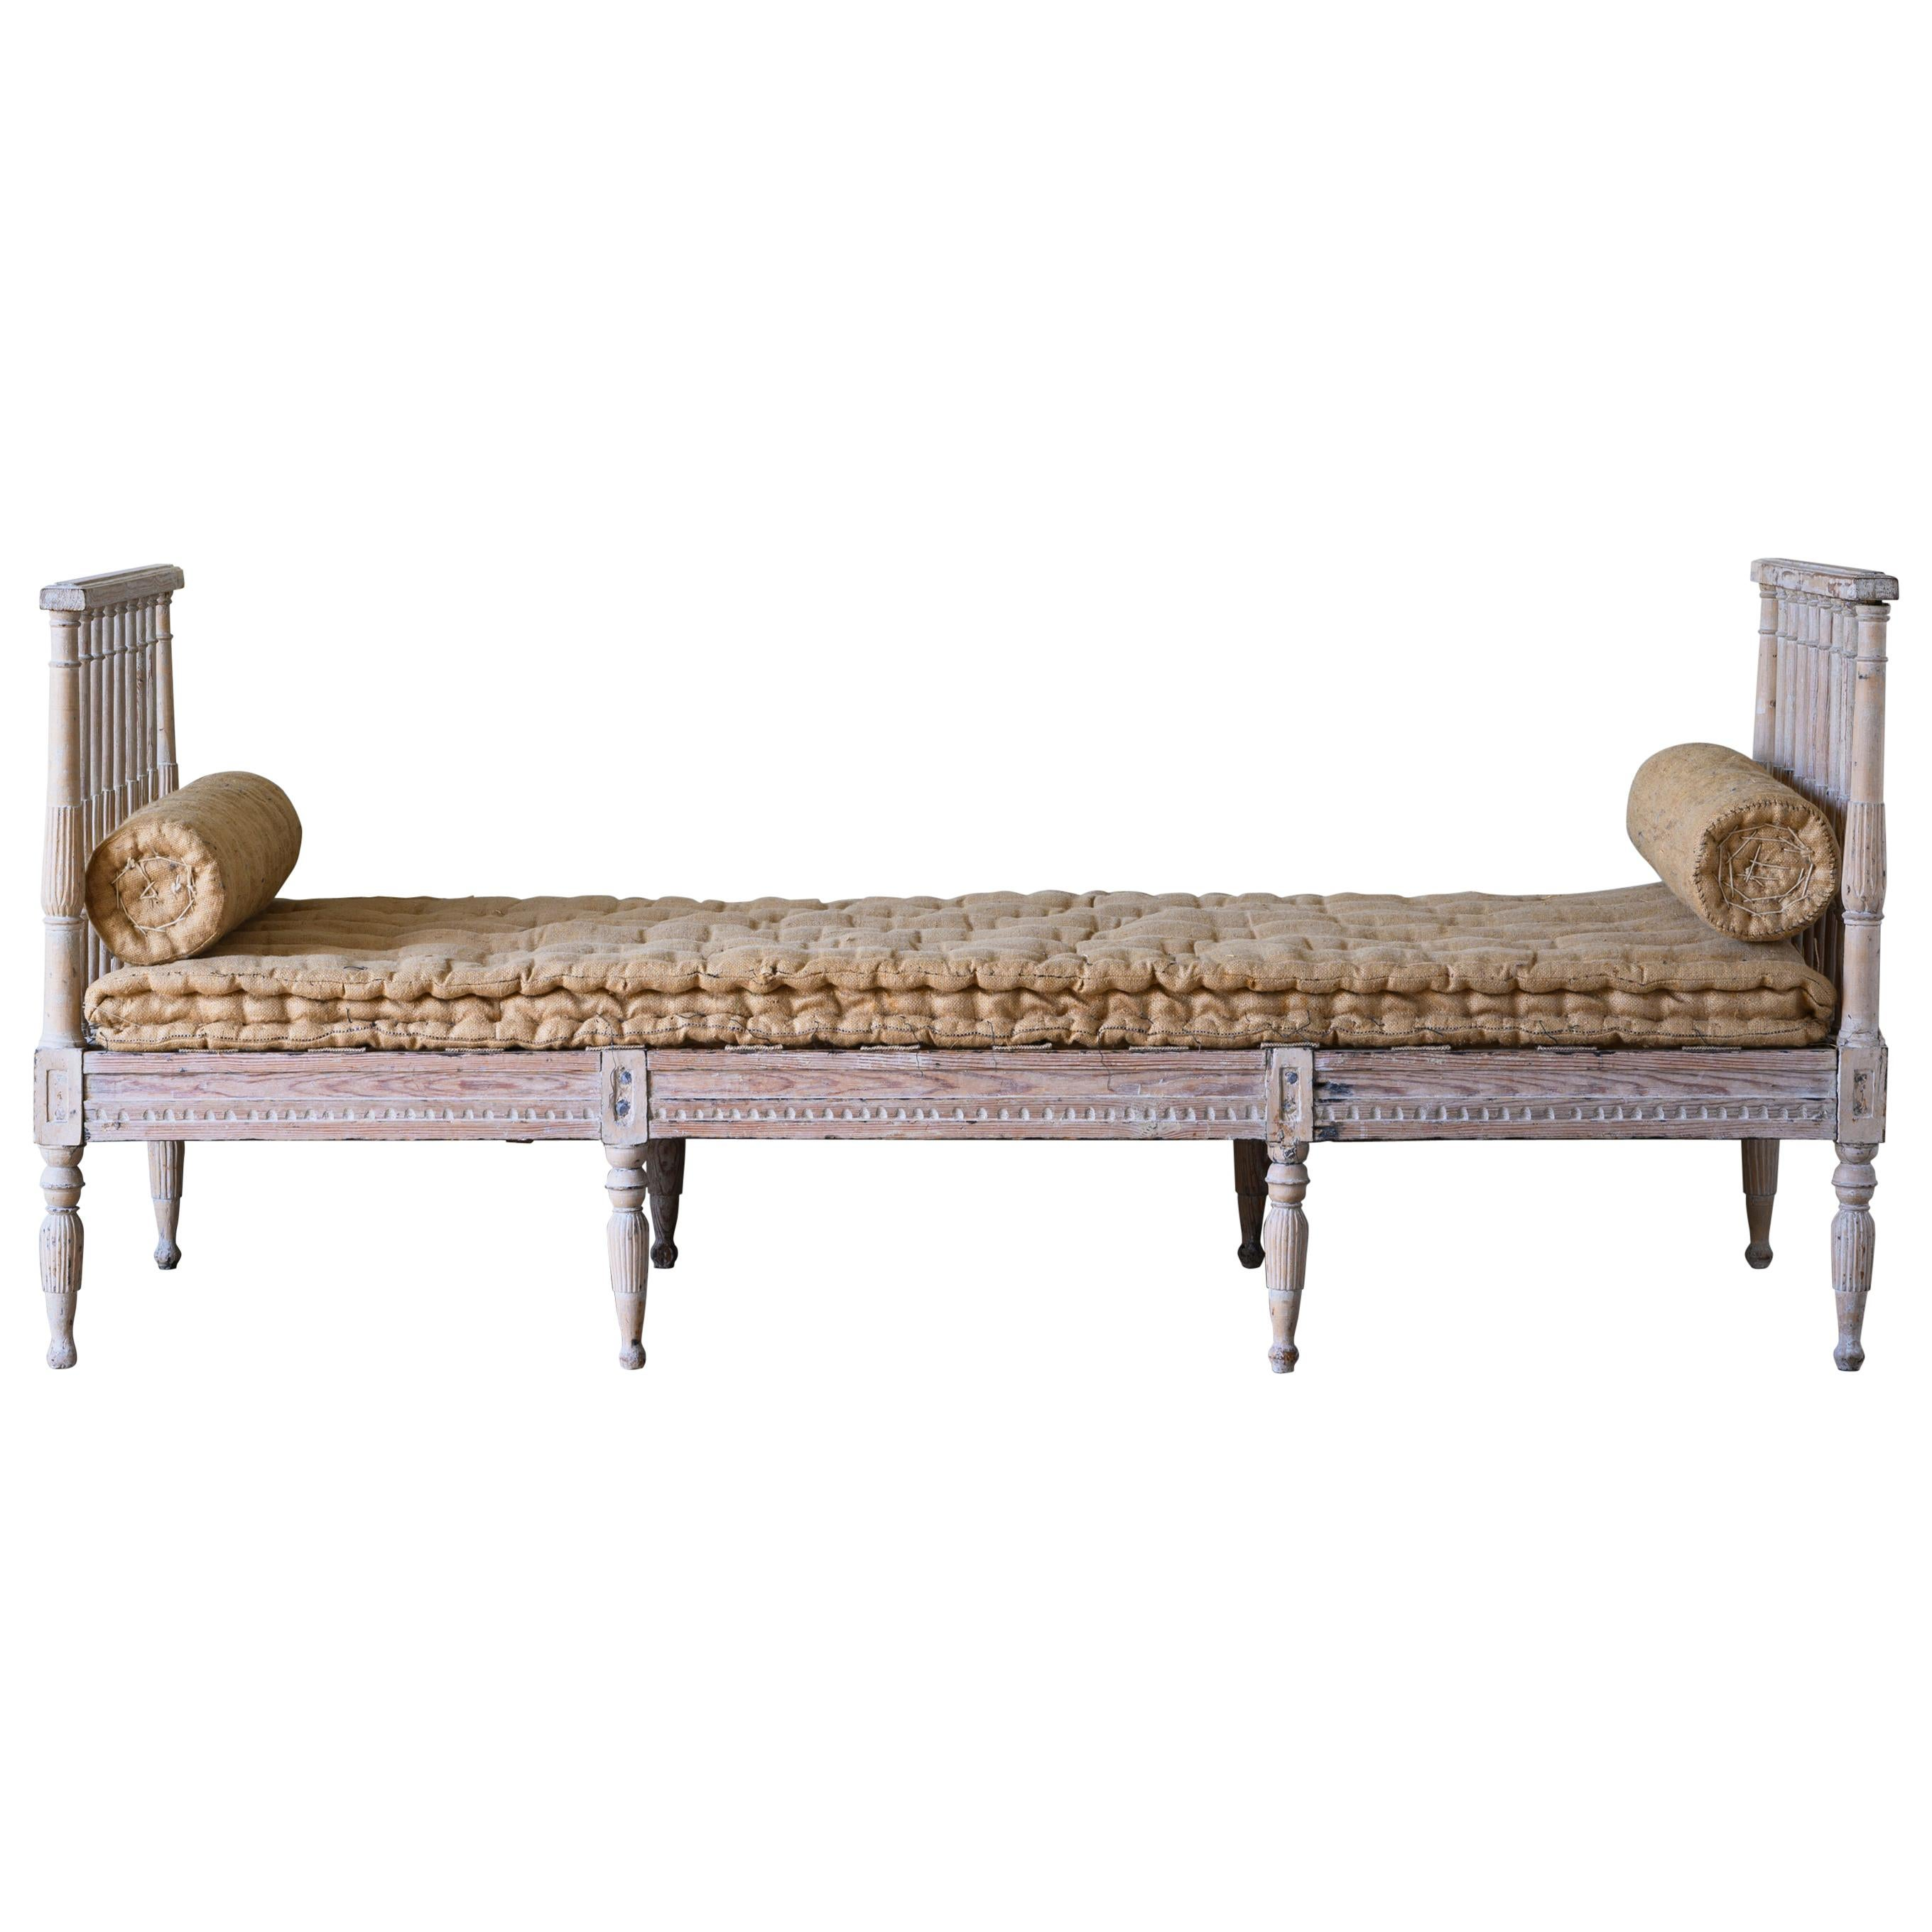 19th Century Swedish Gustavian Sofa / Bench